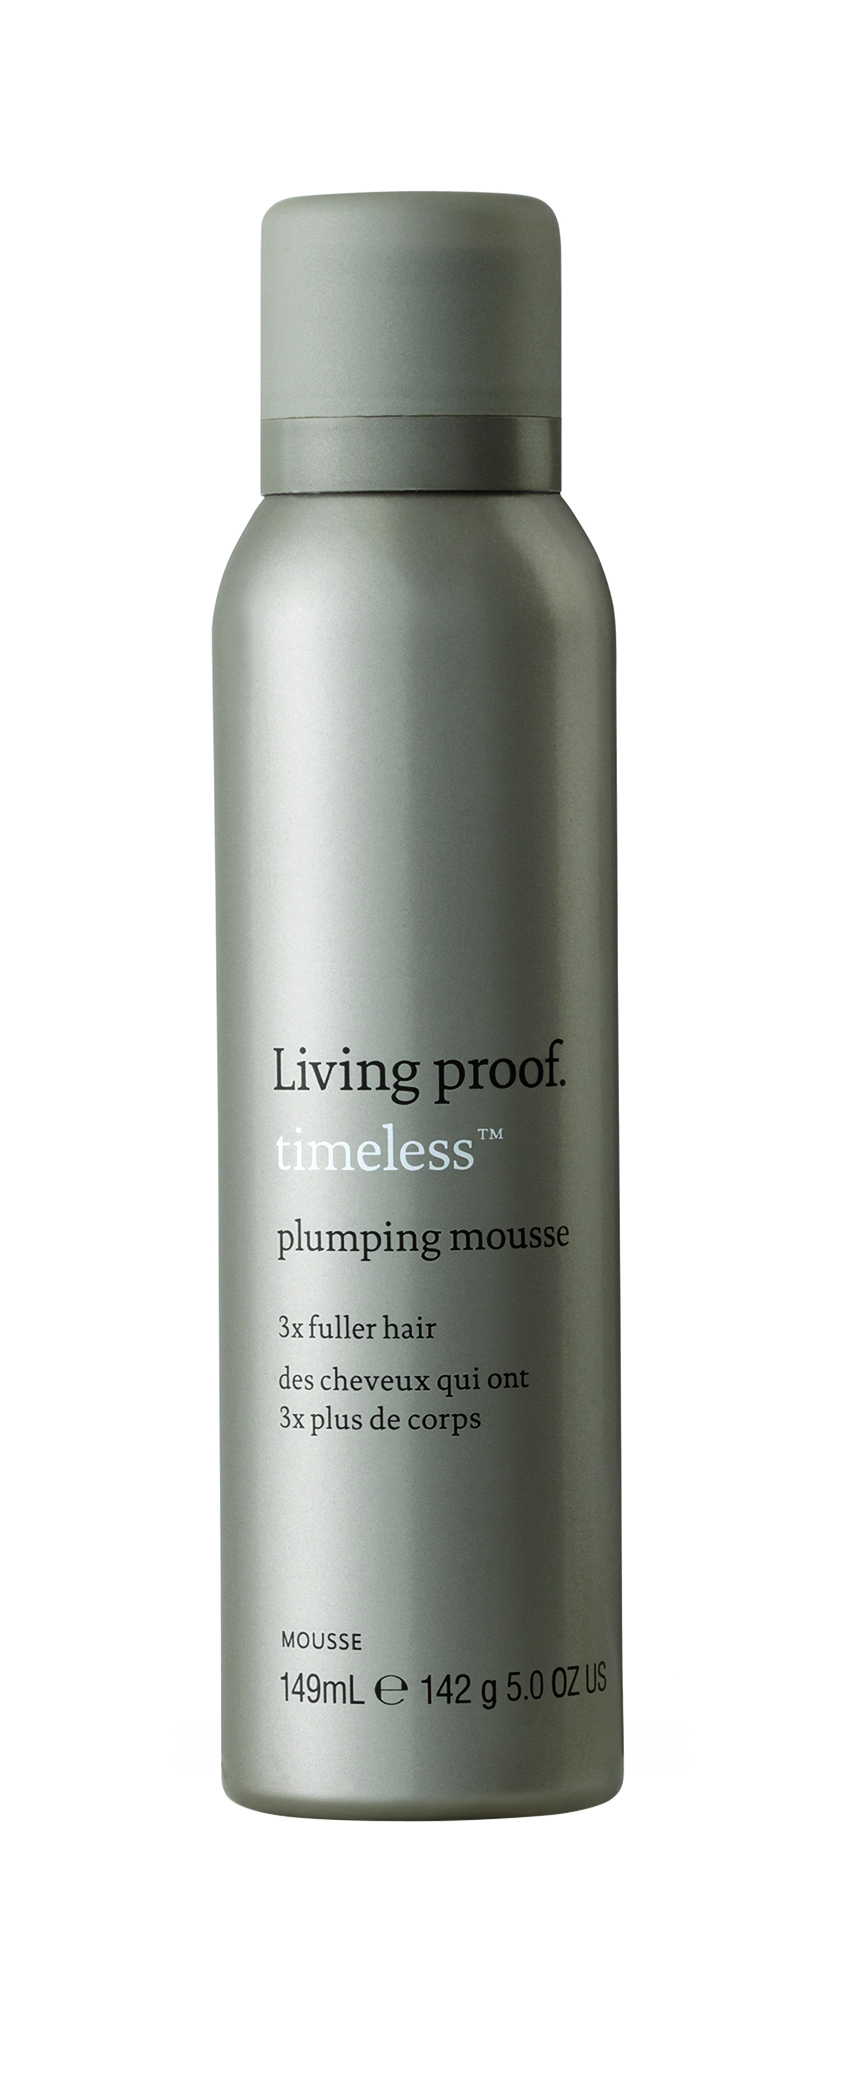 Living Proof  Timeless Plumping Mousse works like a temporary filler, bringing oomph back to aging hair. It has the highest content of the brand's patented volumizing technology to make hair.